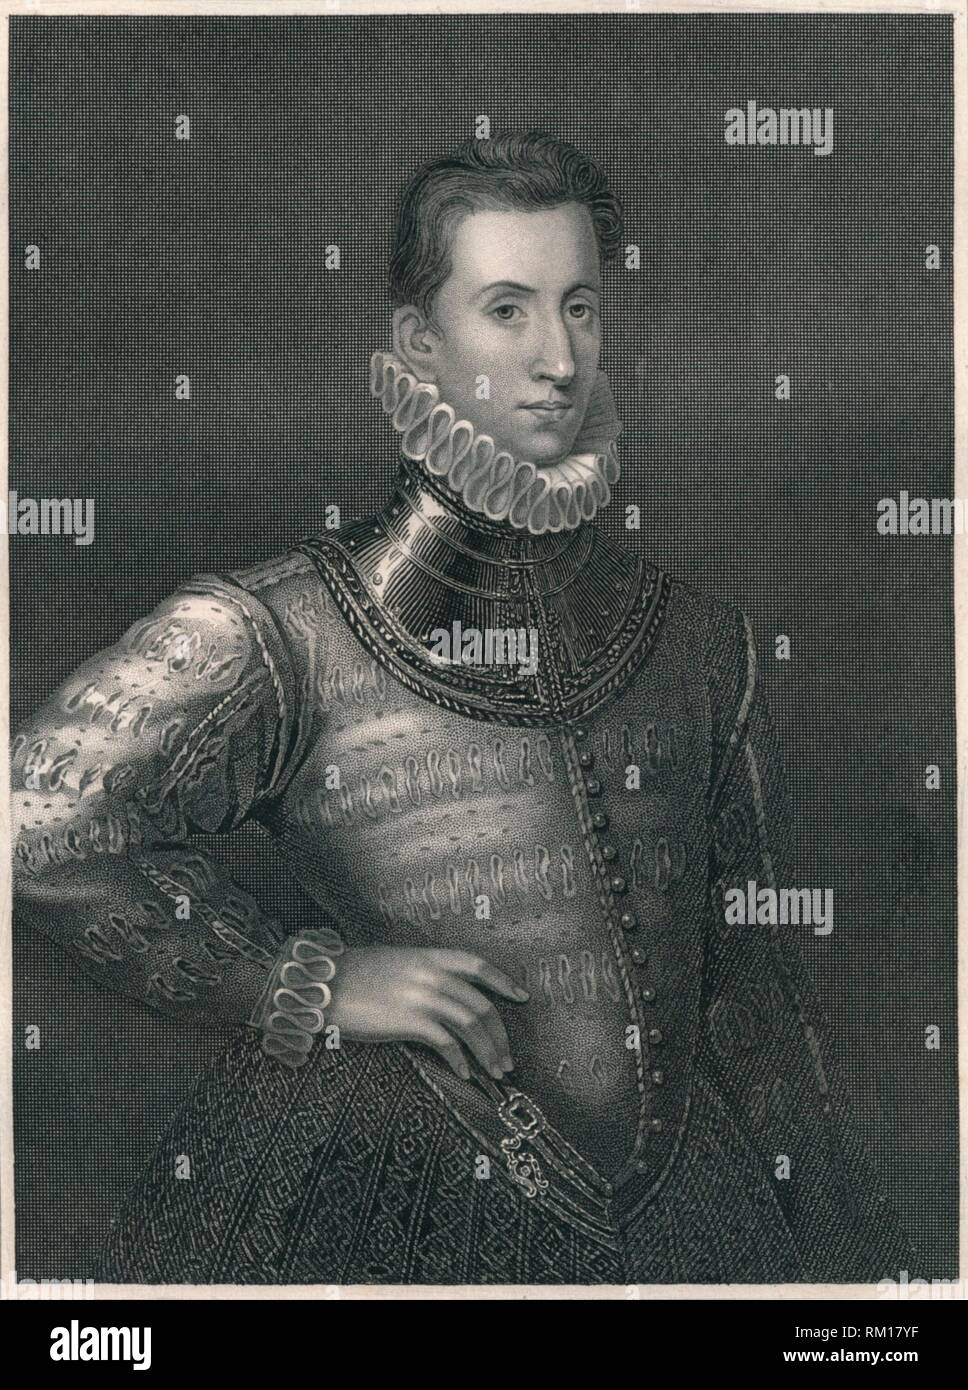 'Sir Philip Sidney', c1576, (early-mid 19th century).  Creator: Unknown. - Stock Image